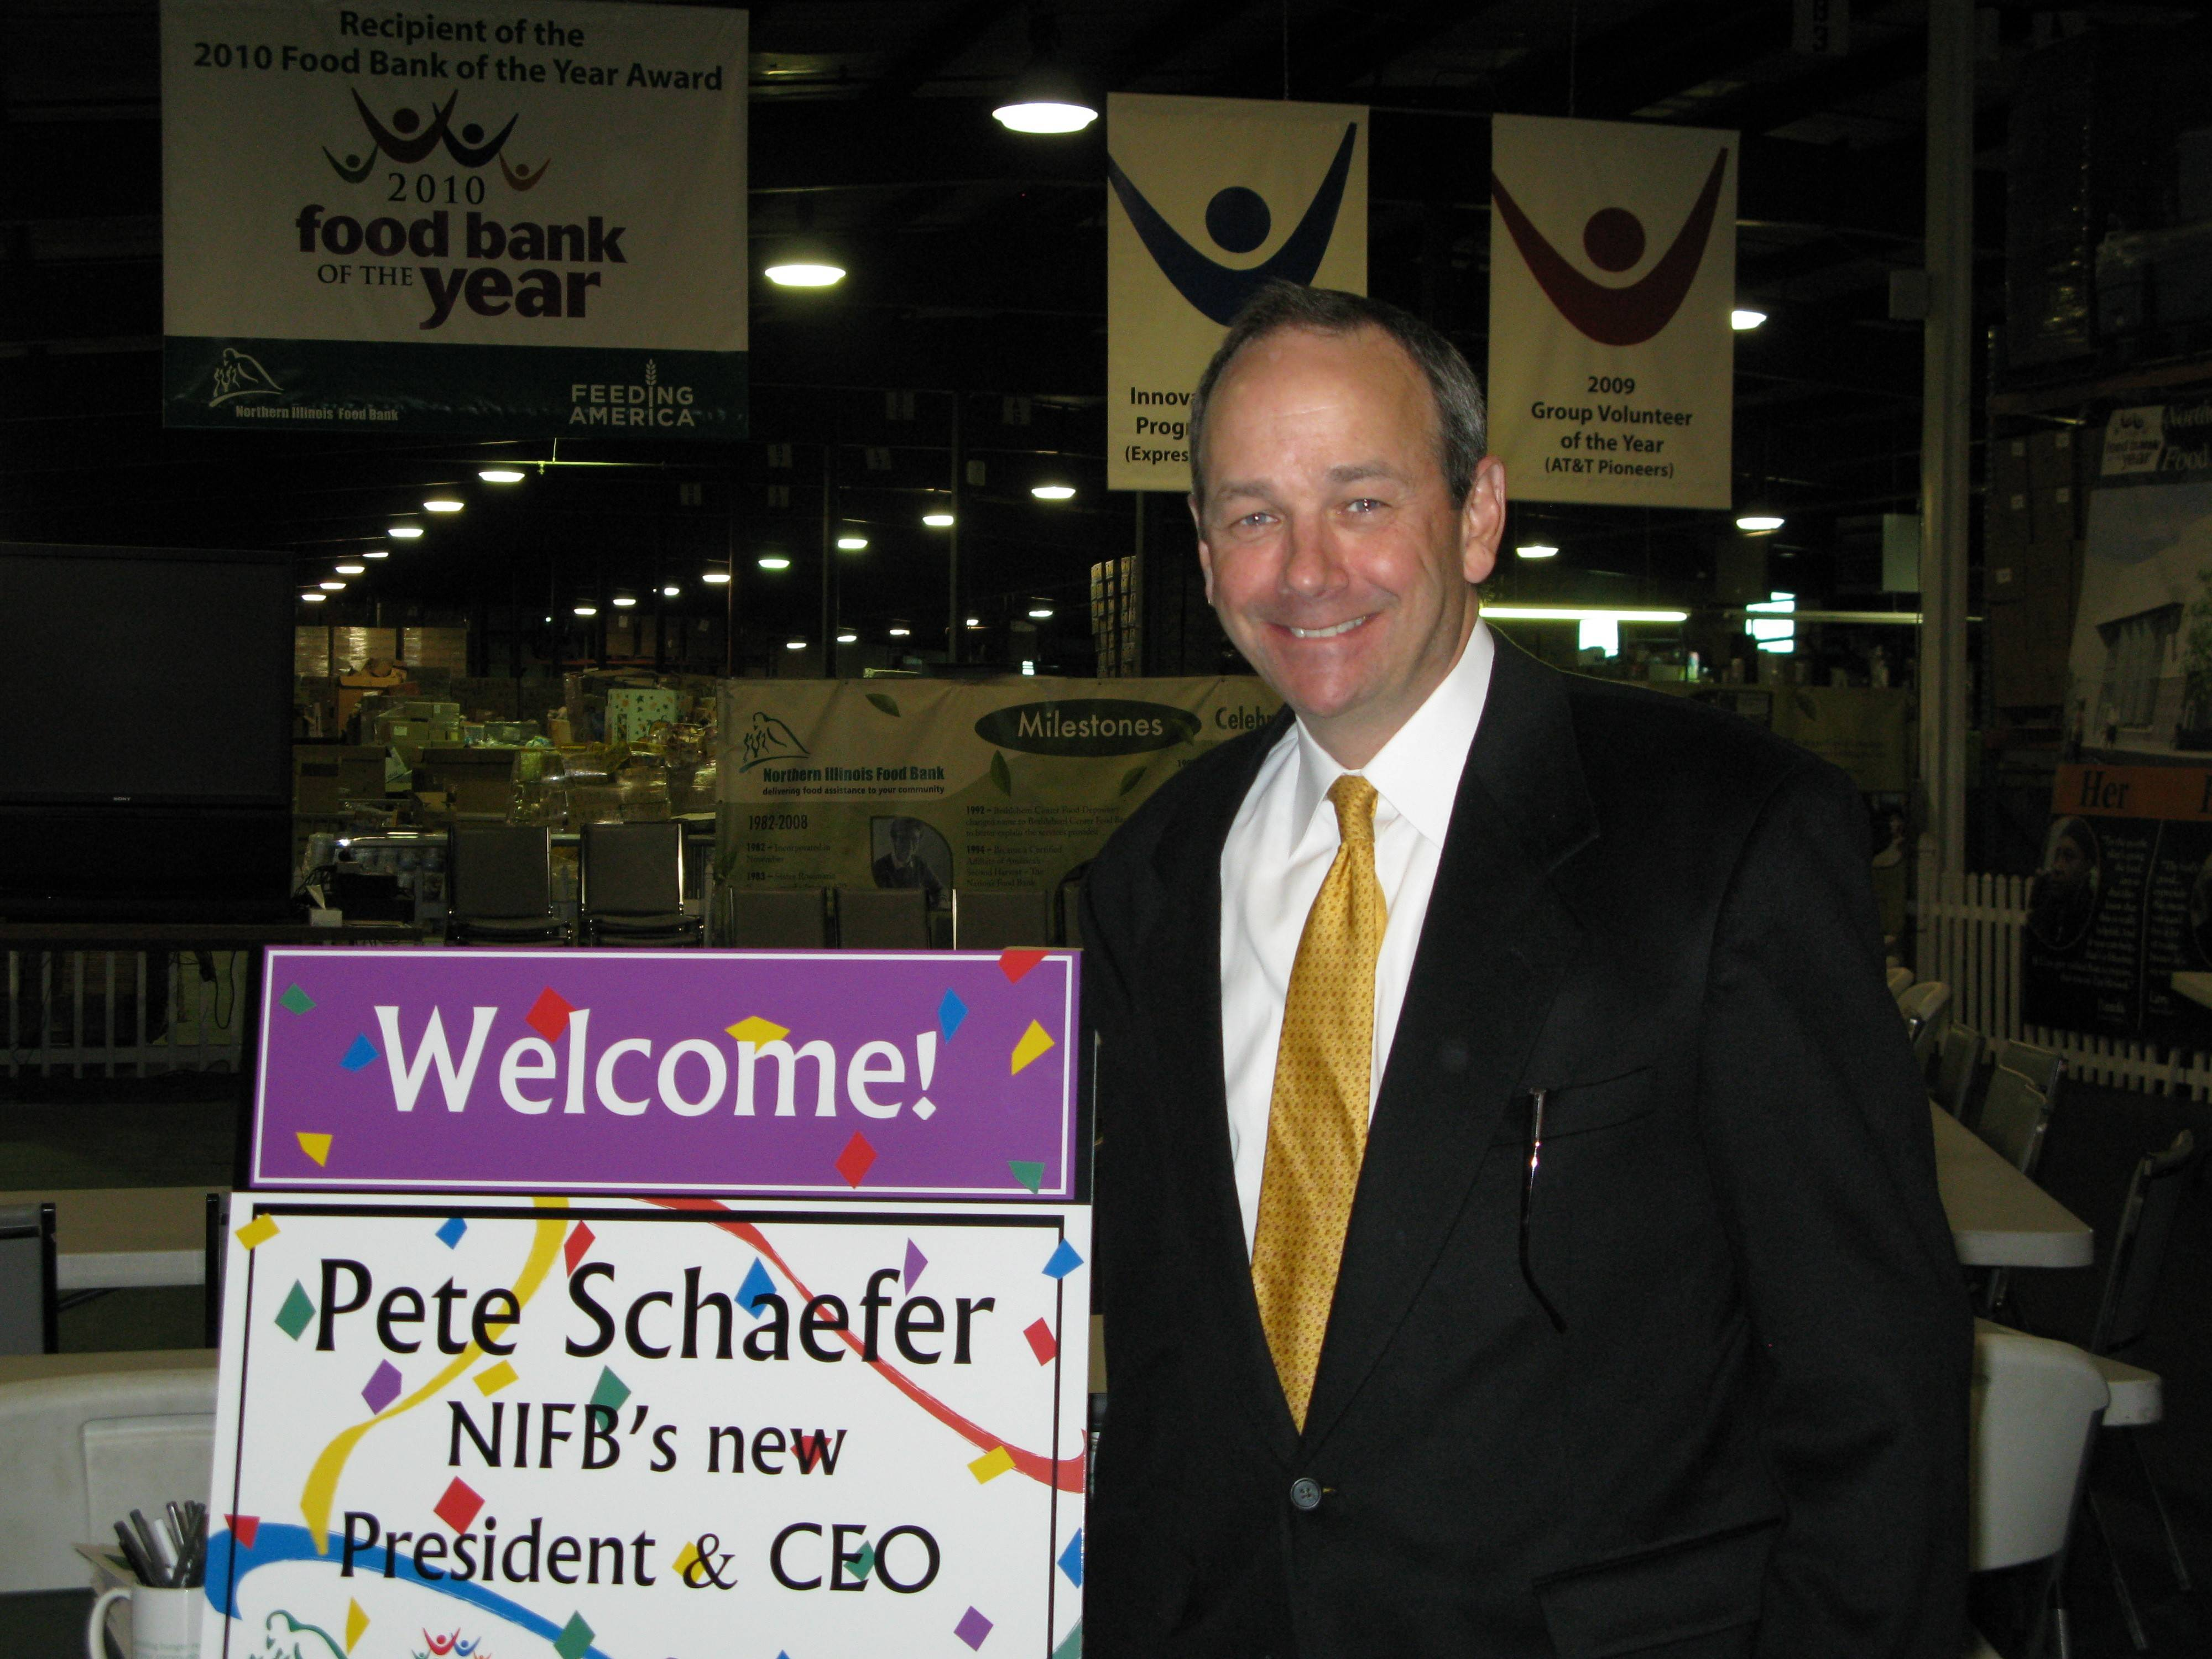 Pete Schaefer is stepping down as the CEO of the Northern Illinois Food Bank after three years at the helm. The food bank improved its infrastructure and increased the number of hungry people it served under his tenure.